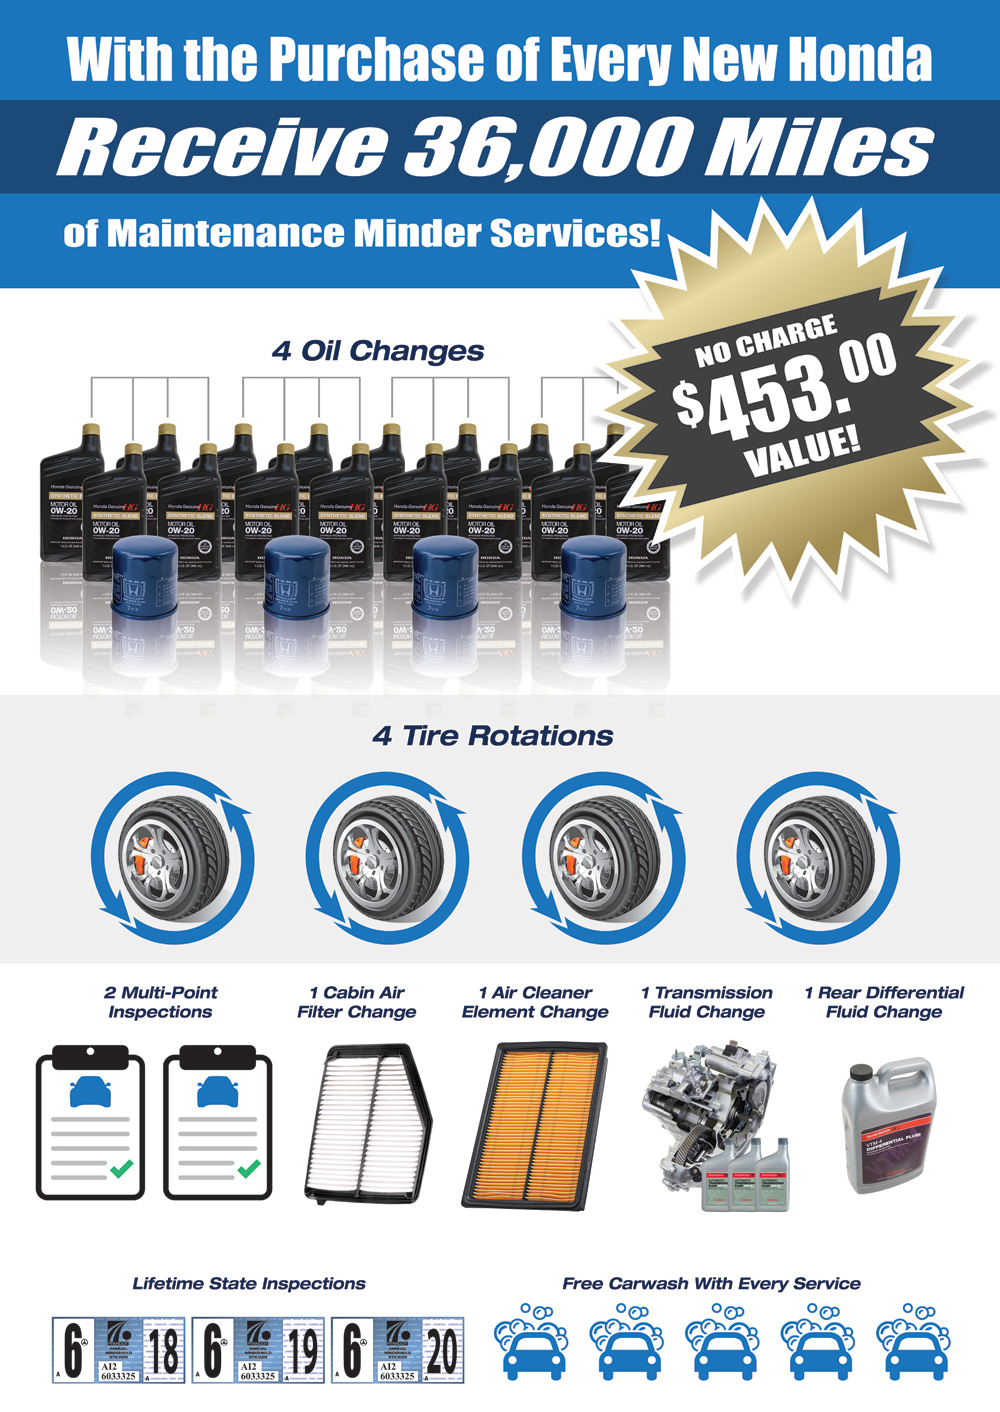 36,000 Miles of Maintenance Minder Services with Every New Honda!